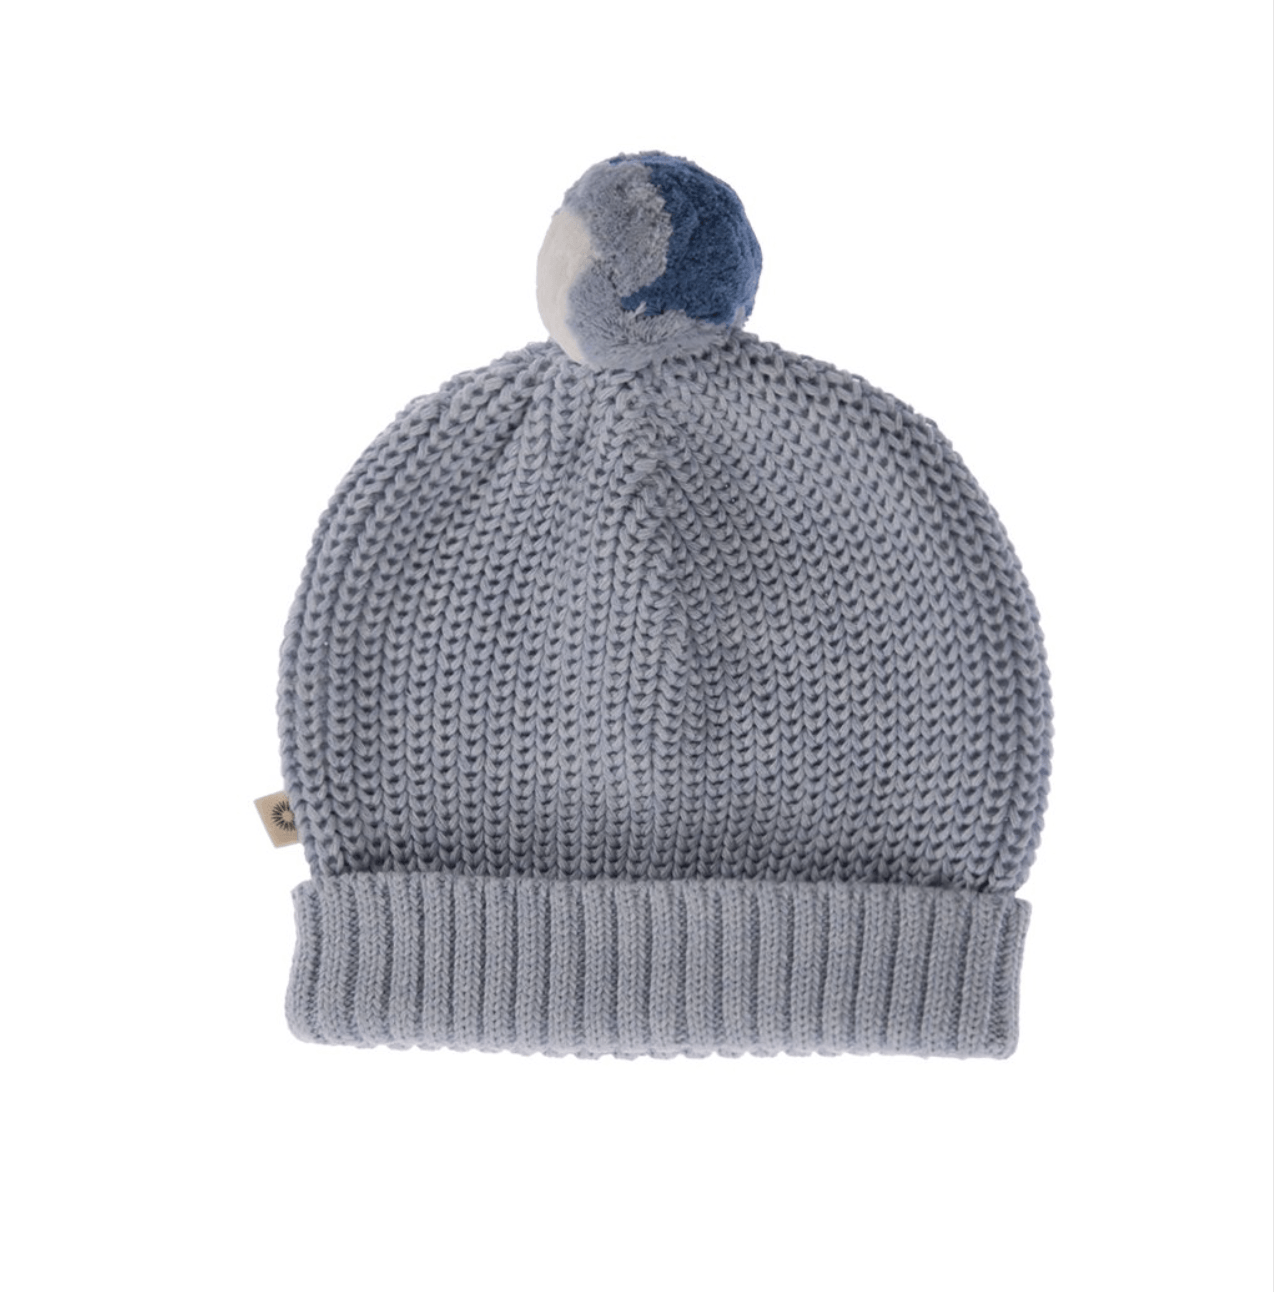 6dc00be70f5 Jujo Baby Knitted Beanie - Pale Blue - Tiny People Cool Kids Clothes Byron  Bay